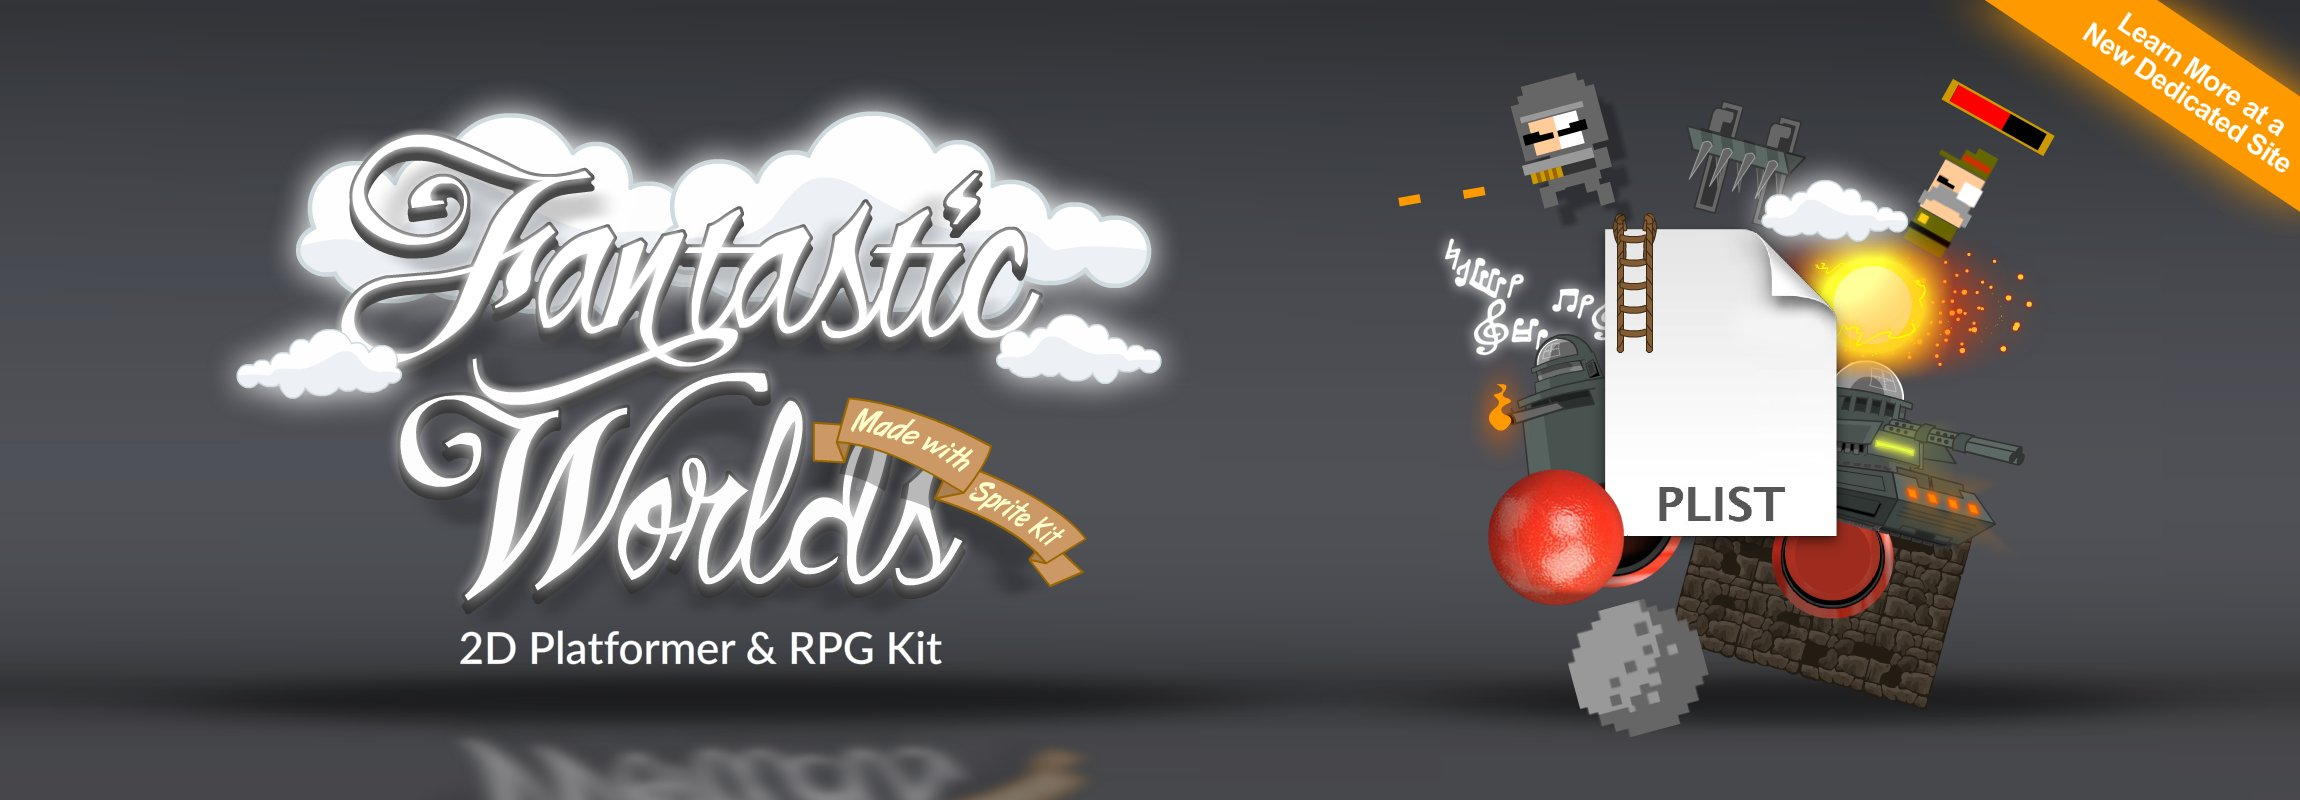 Click to view The Fantastic Worlds iOS Starter Kit for Side Scrolling, Top Down or Isometric Role Playing Games!